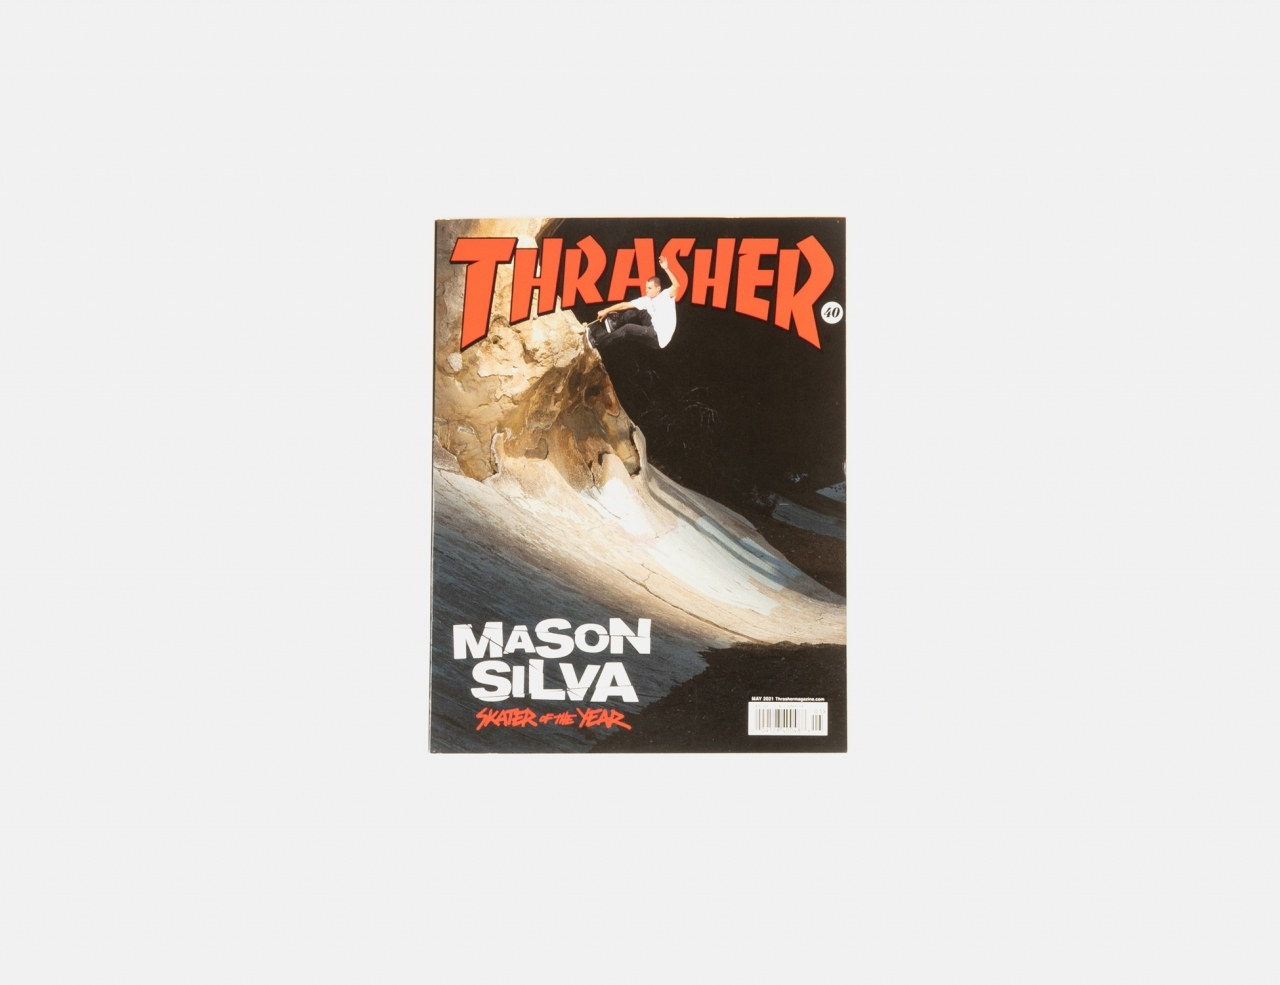 Thrasher Issues 2021 - May